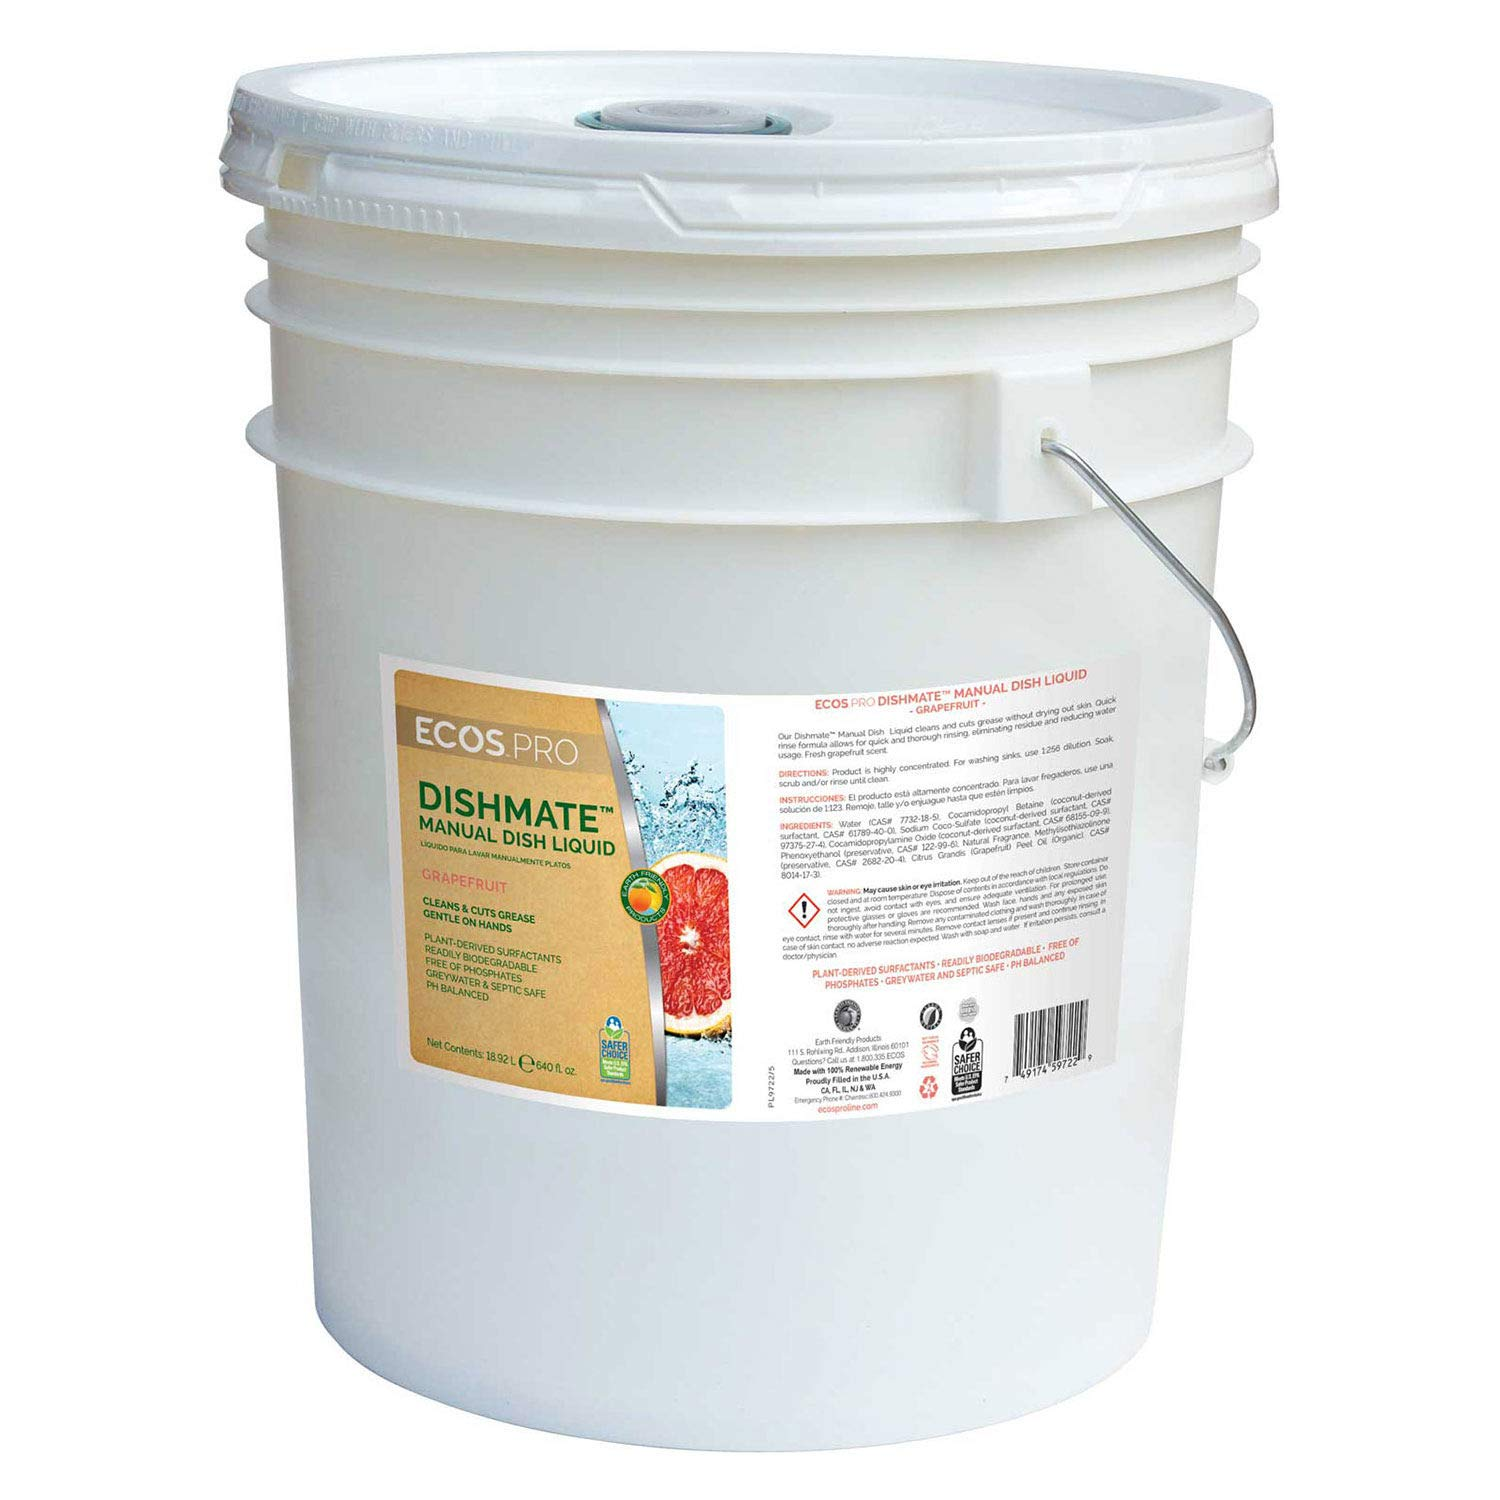 Dishmate Dishwashing Liquid, Grapefruit 5 Gallon Pail, Lot of 1 by Earth Friendly Products